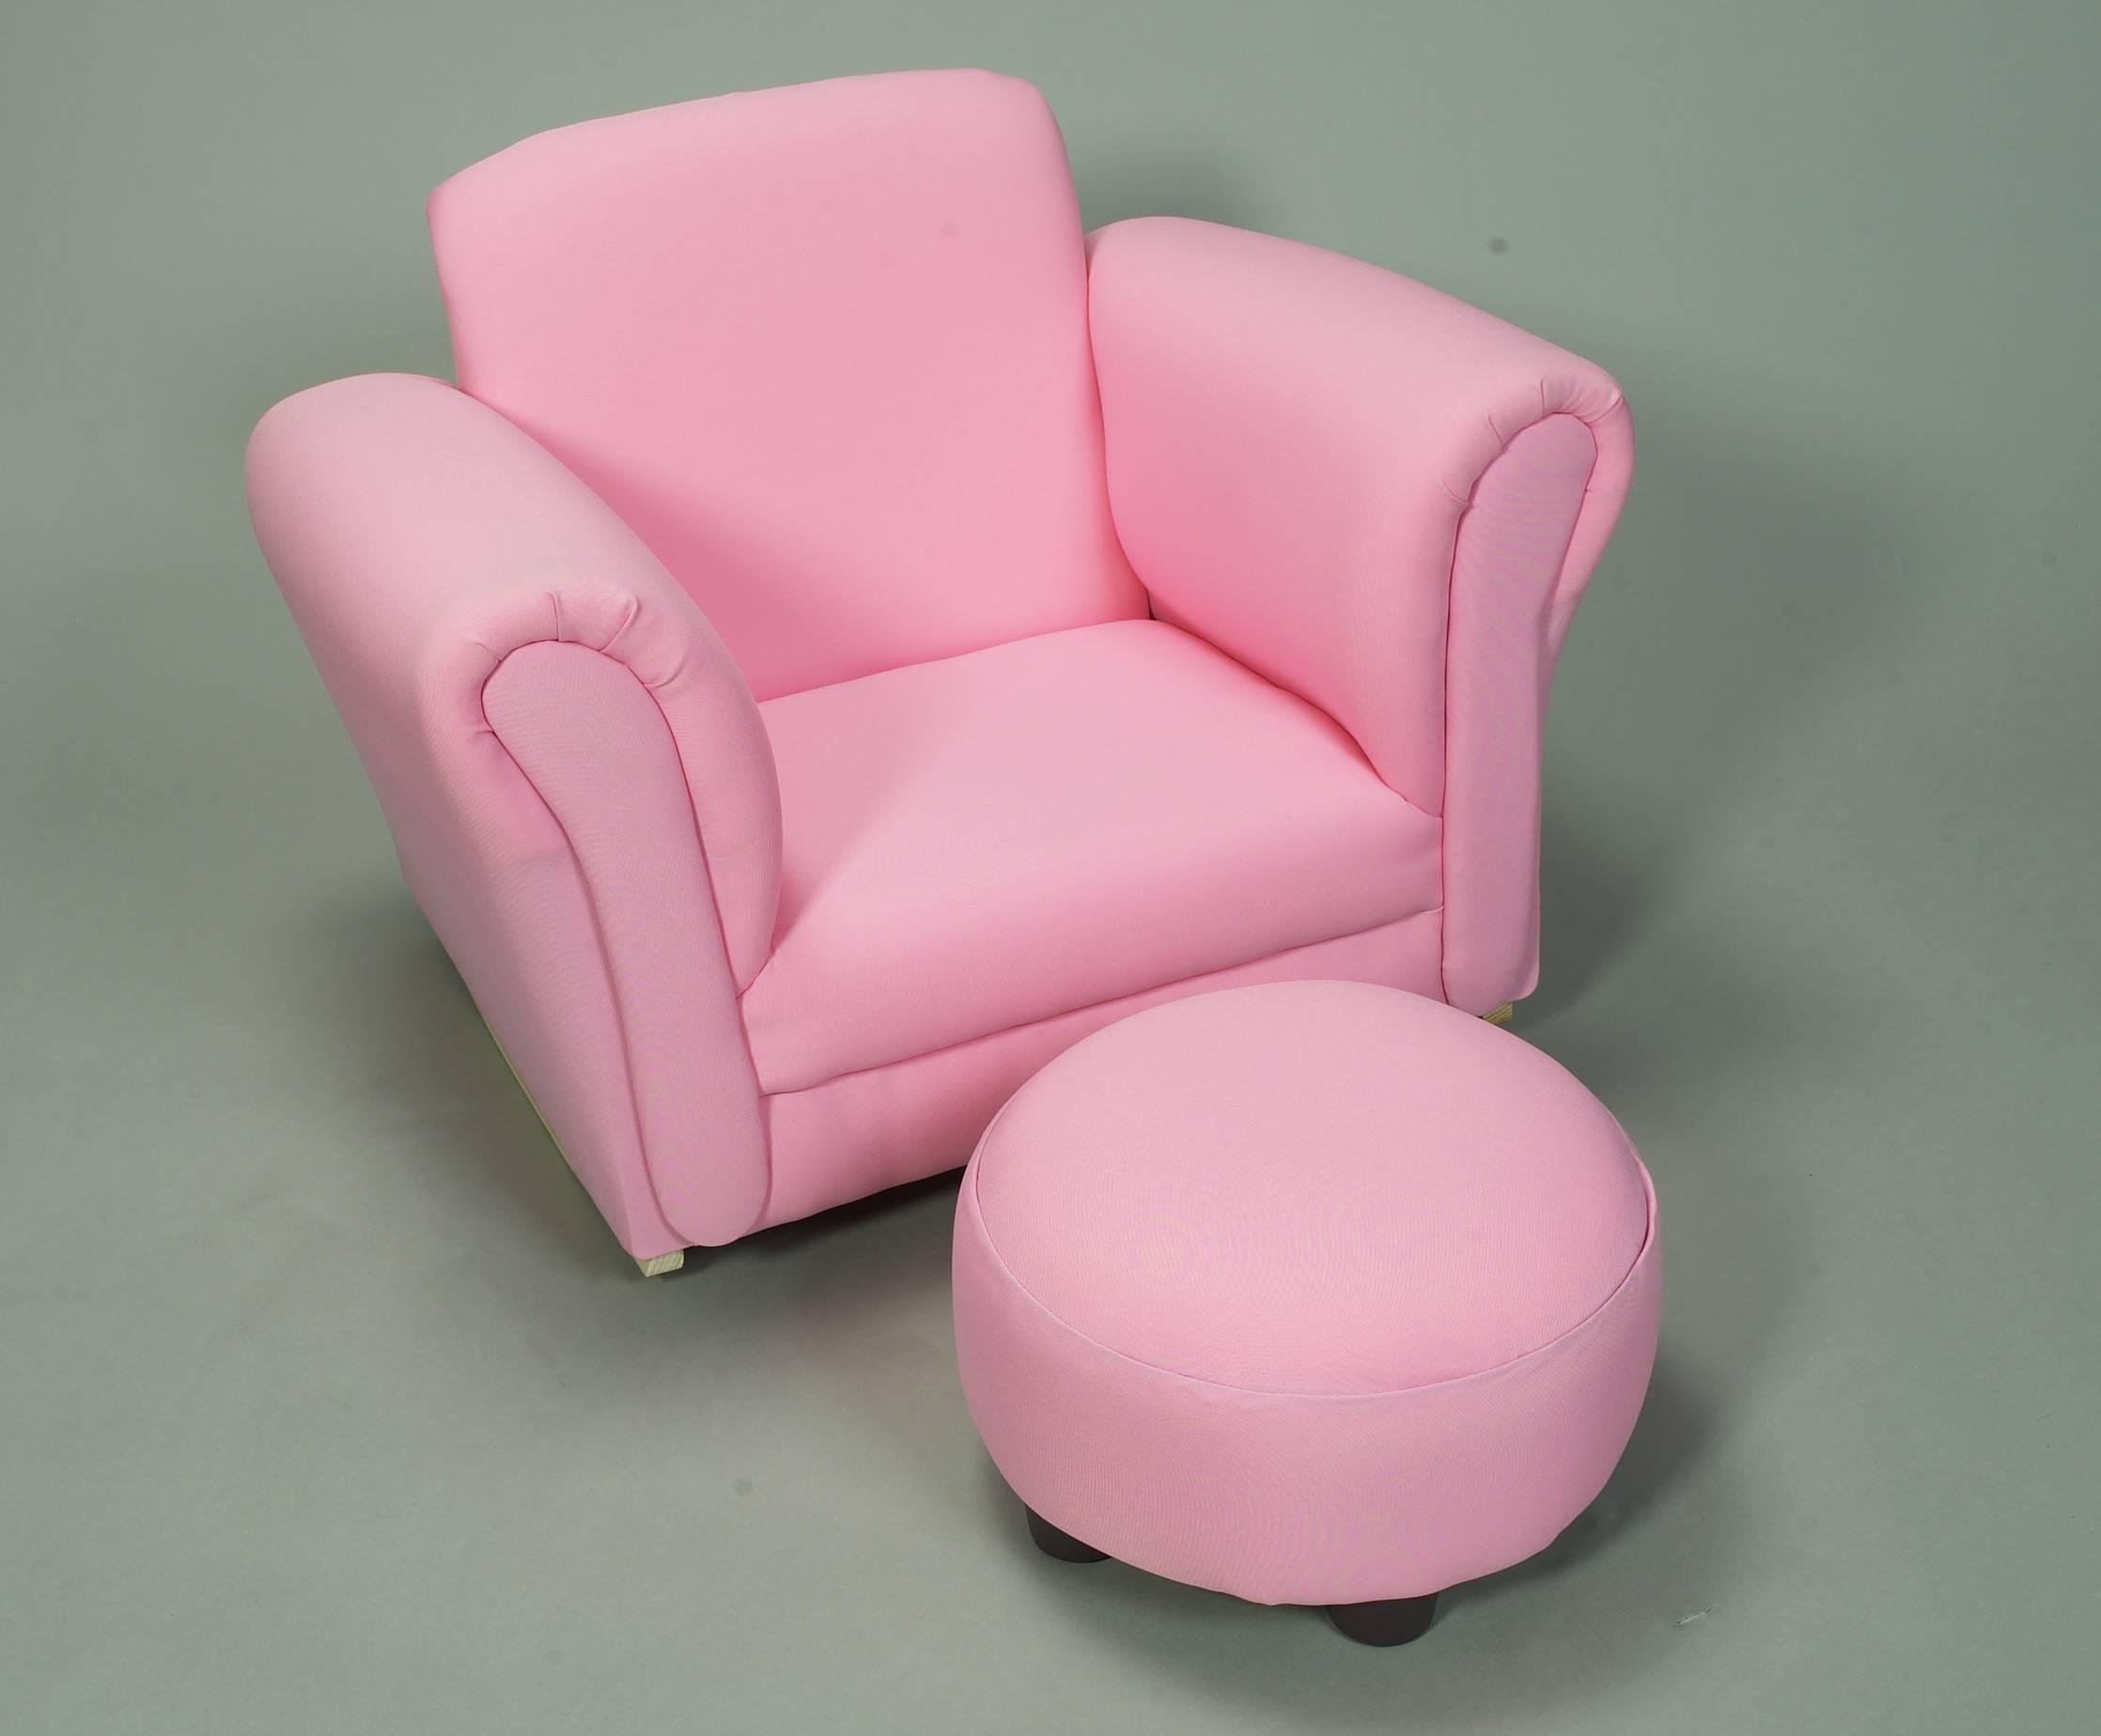 Gift Mark Upholstered Rocking Chair and Ottoman, Pink